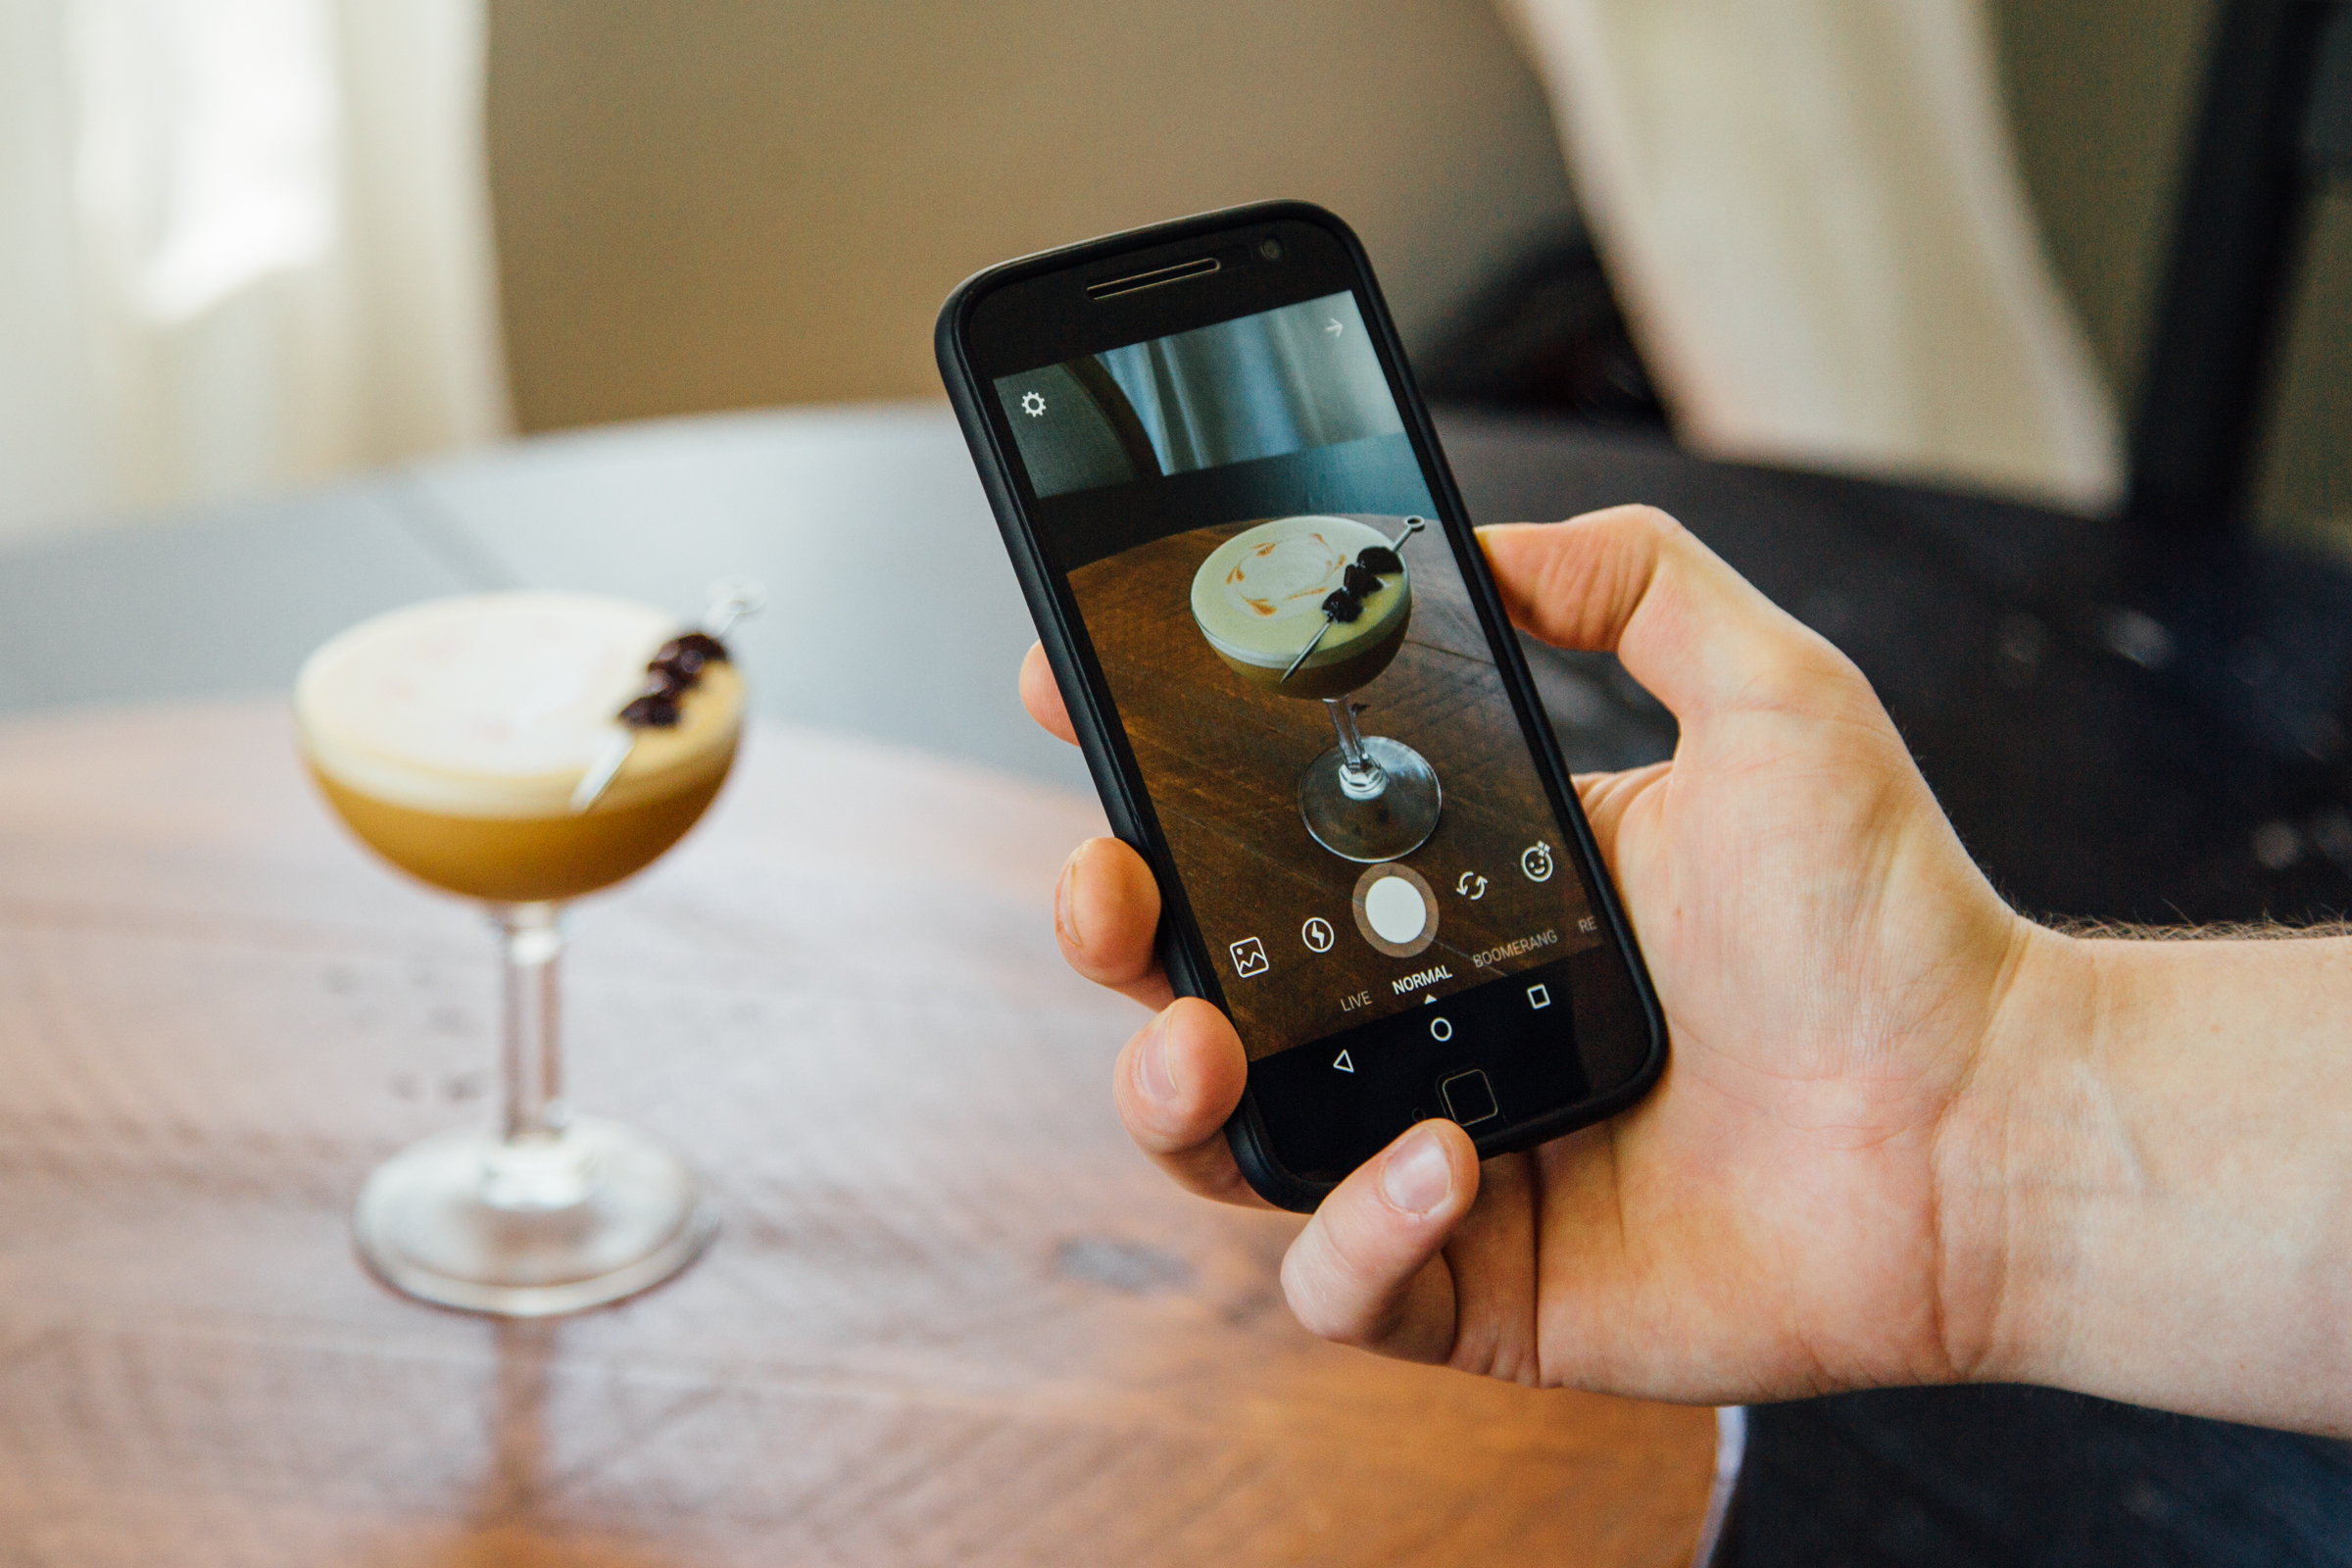 Taking a photo of a cocktail